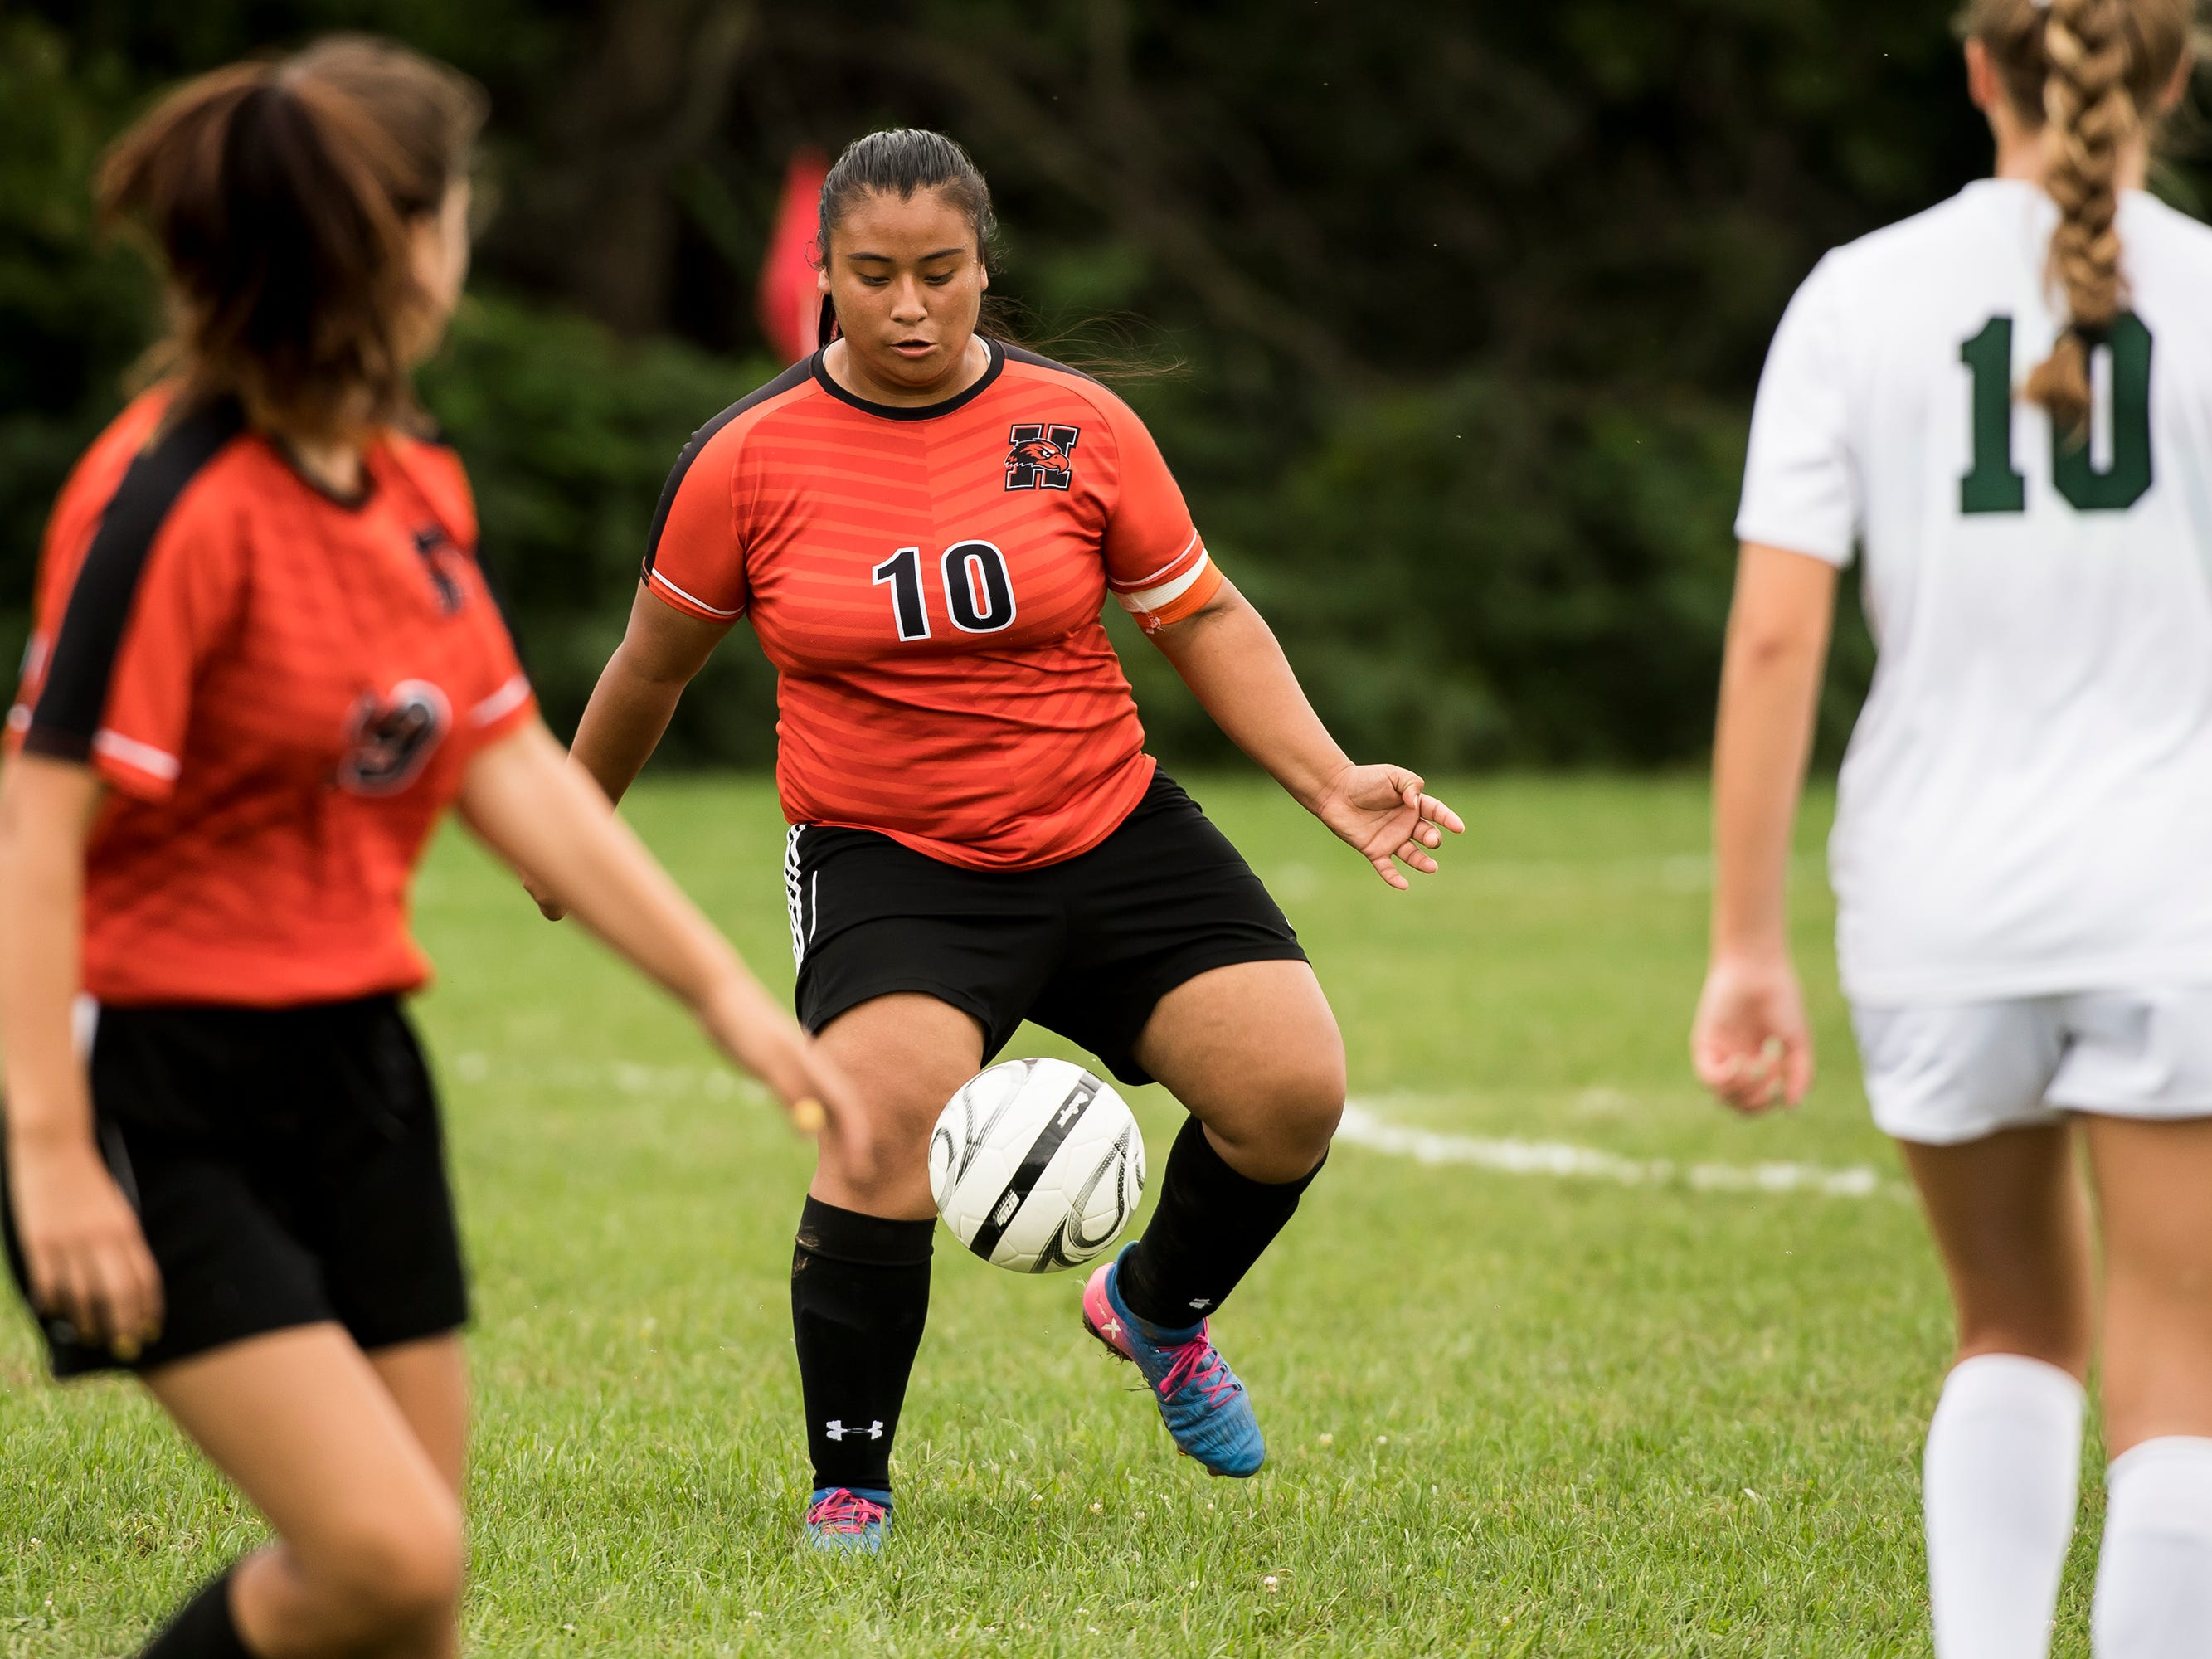 Hanover's Guadalupe Michua dribbles the ball during a game against Fairfield on Thursday, September 13, 2018. The Knights beat the Nighthawks 19-0.